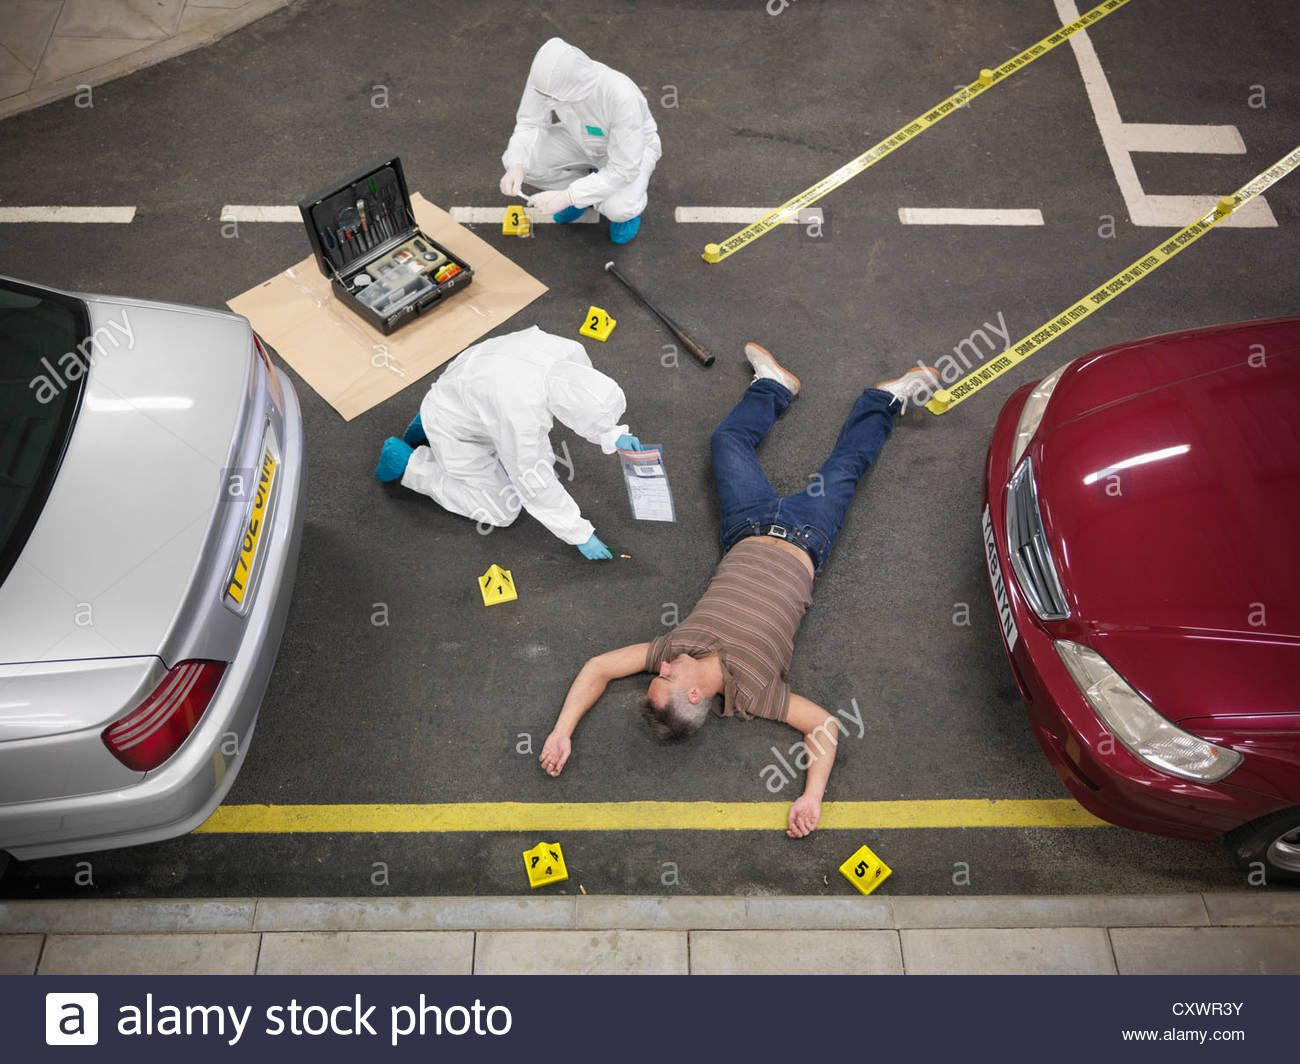 how crime scene investigations aid in Start studying criminal investigation 1 learn of the streets to aid the law enforcement officials in assisting officers, address of crime scene.